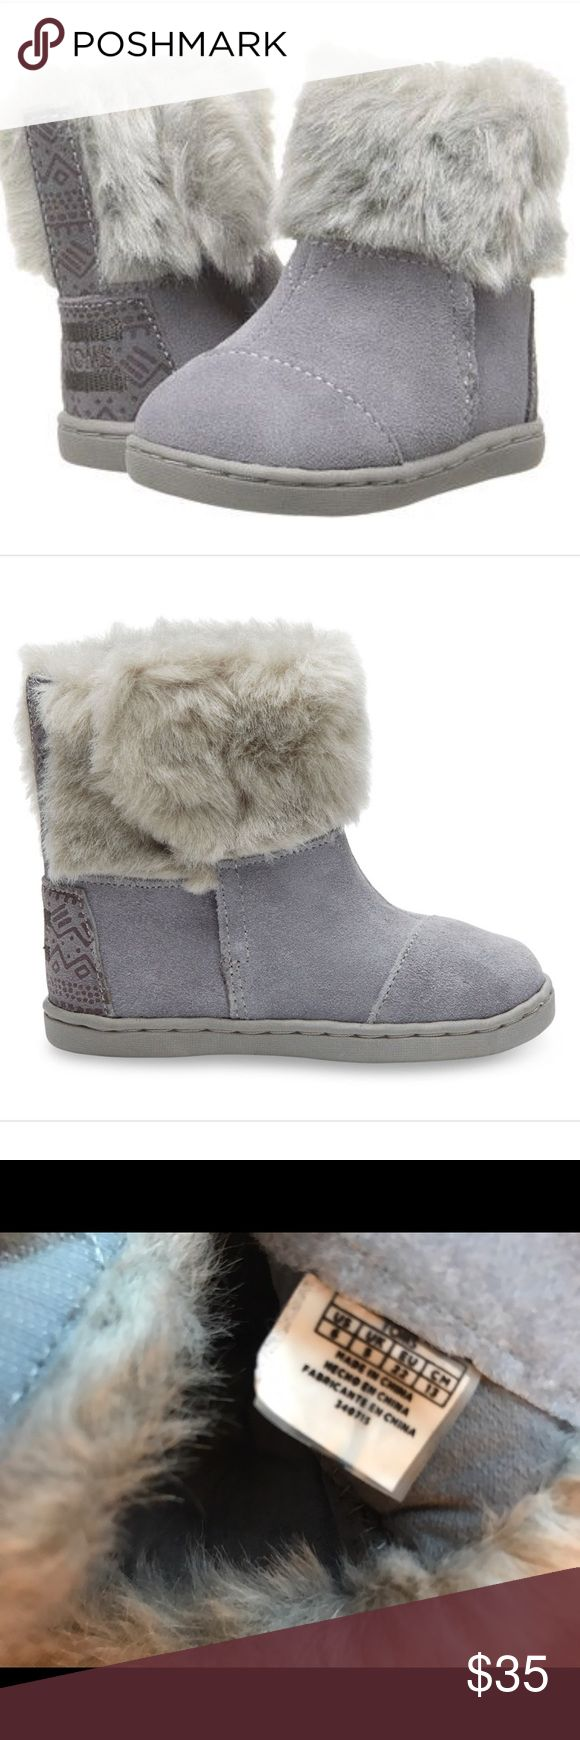 TOMS Nepal Boot NWT Gray Suede Faux Fur US6 These adorable boots have become hard to find & will suit any child needing super cute, warm, durable shoes for the rest of winter & early spring. TOMS Shoes Boots